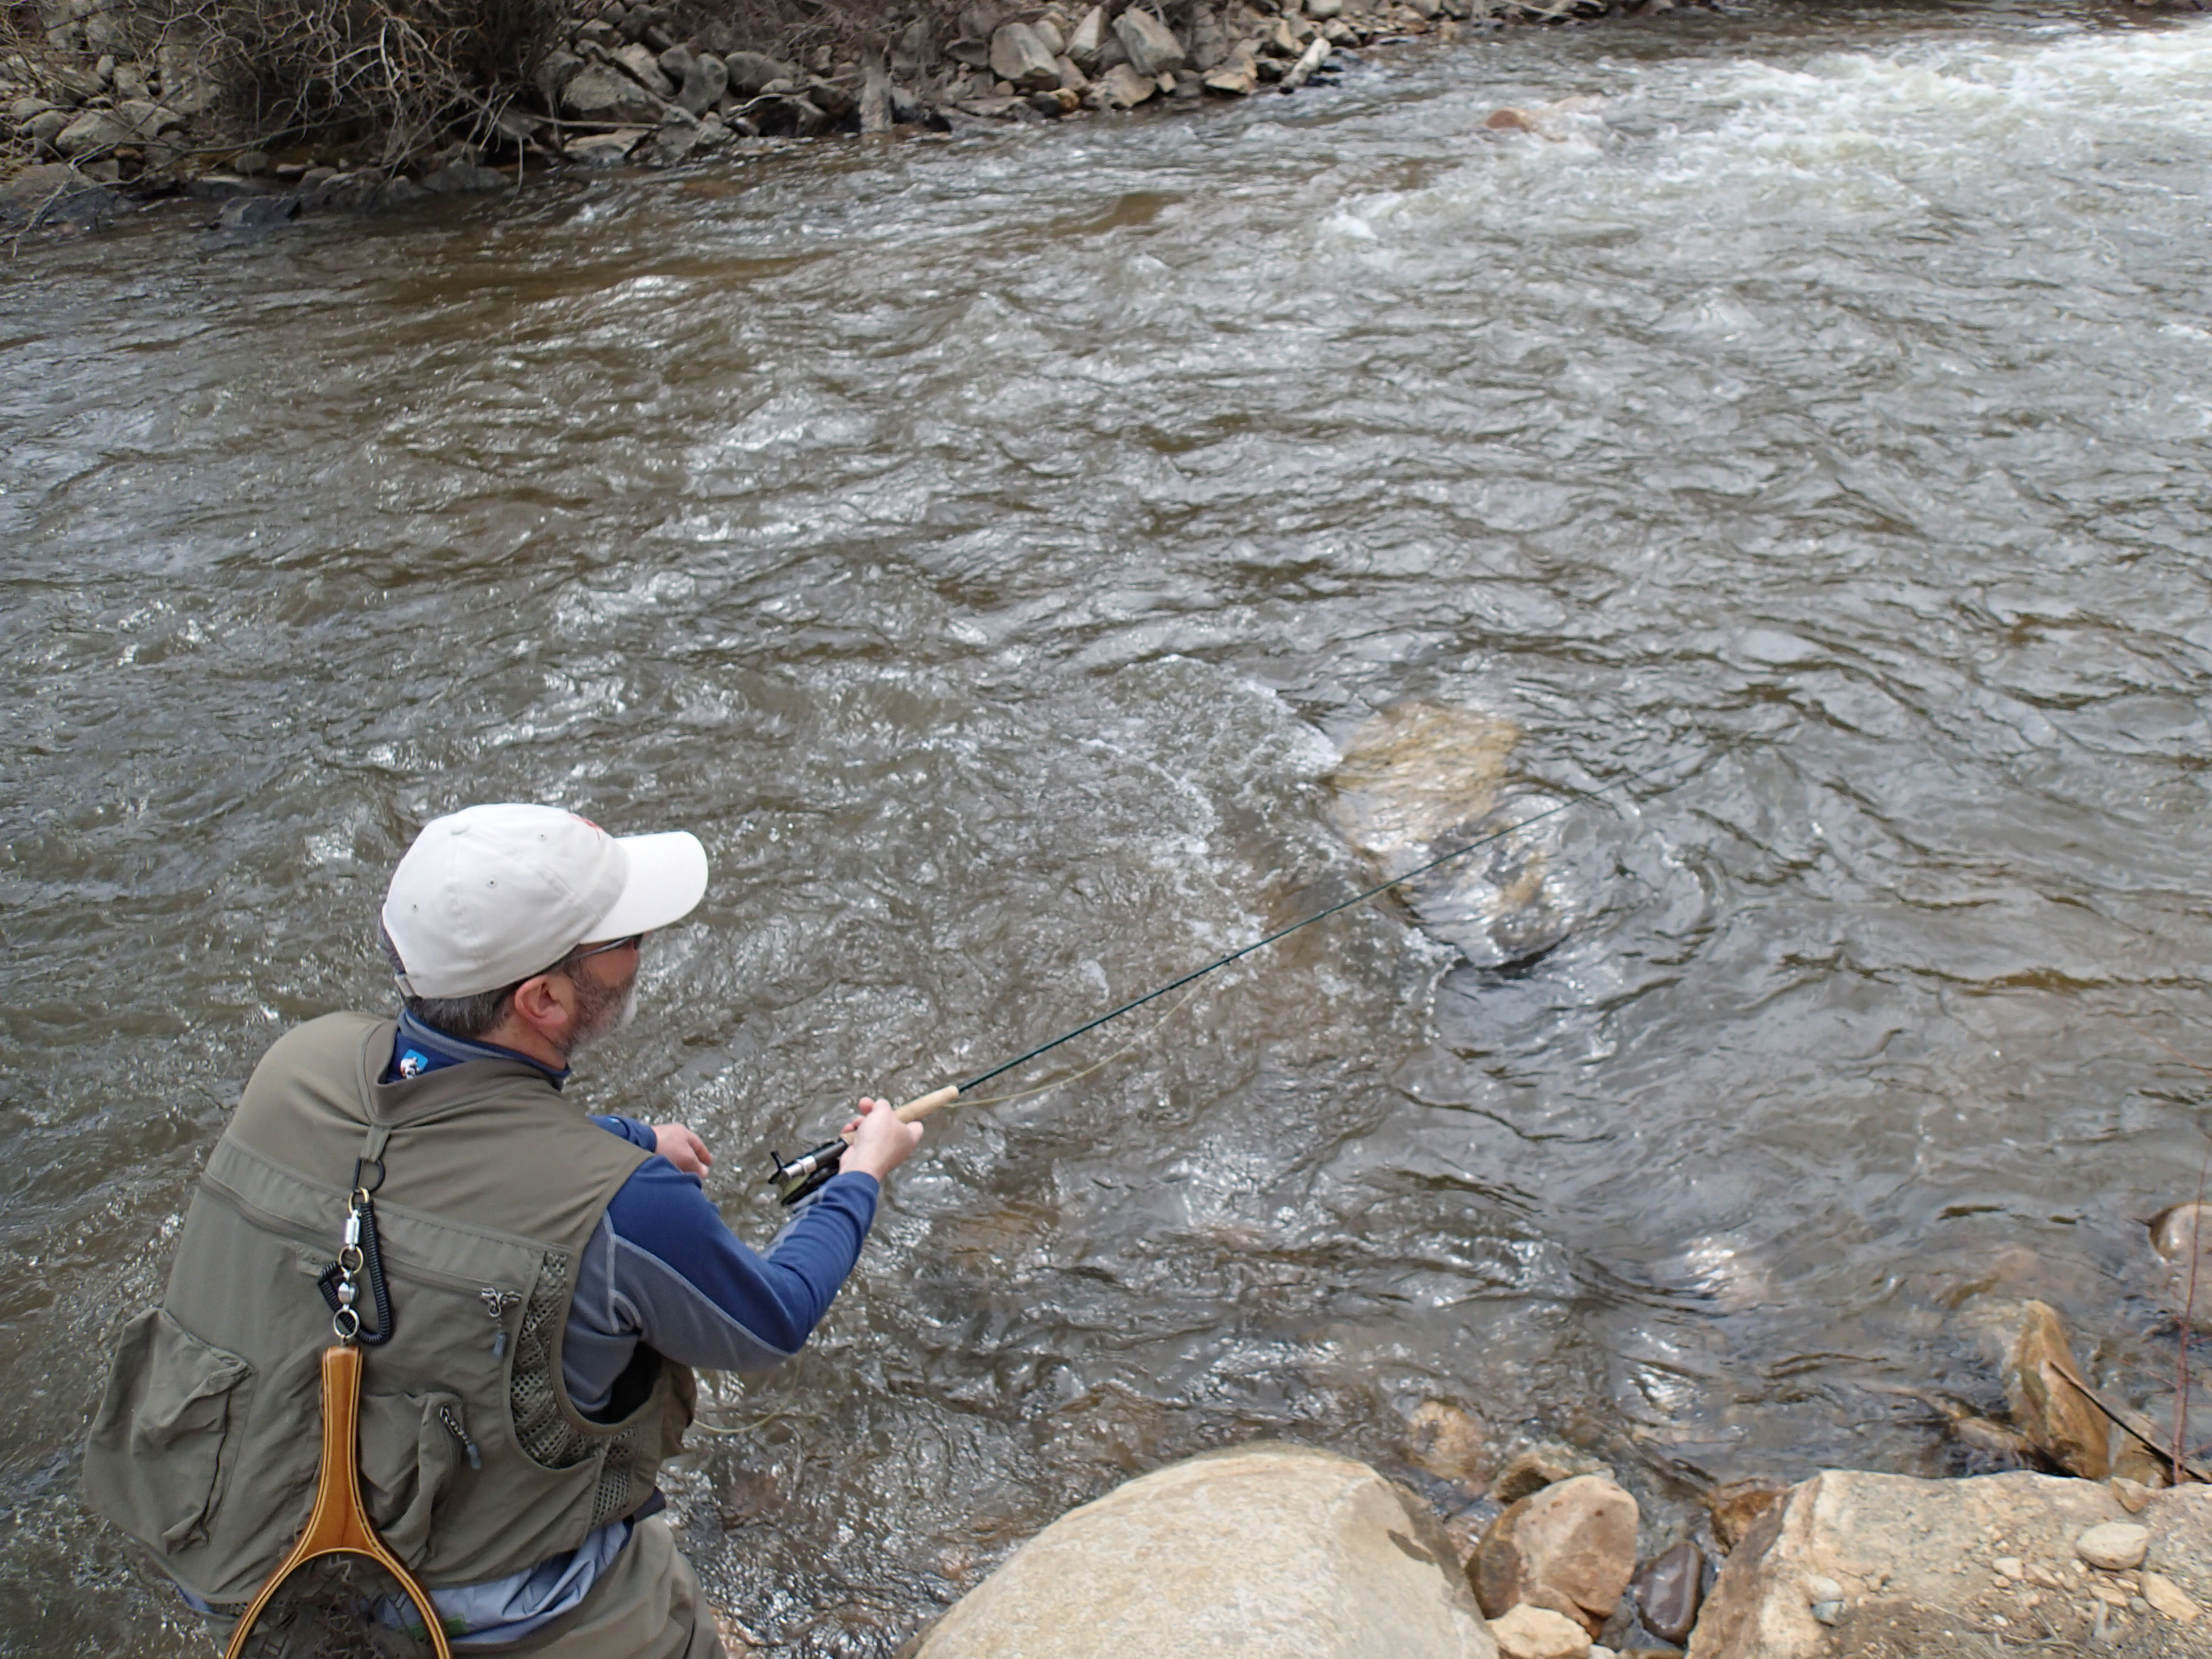 Colorado fly fishing reports lincoln hills trip report for Colorado fly fishing report